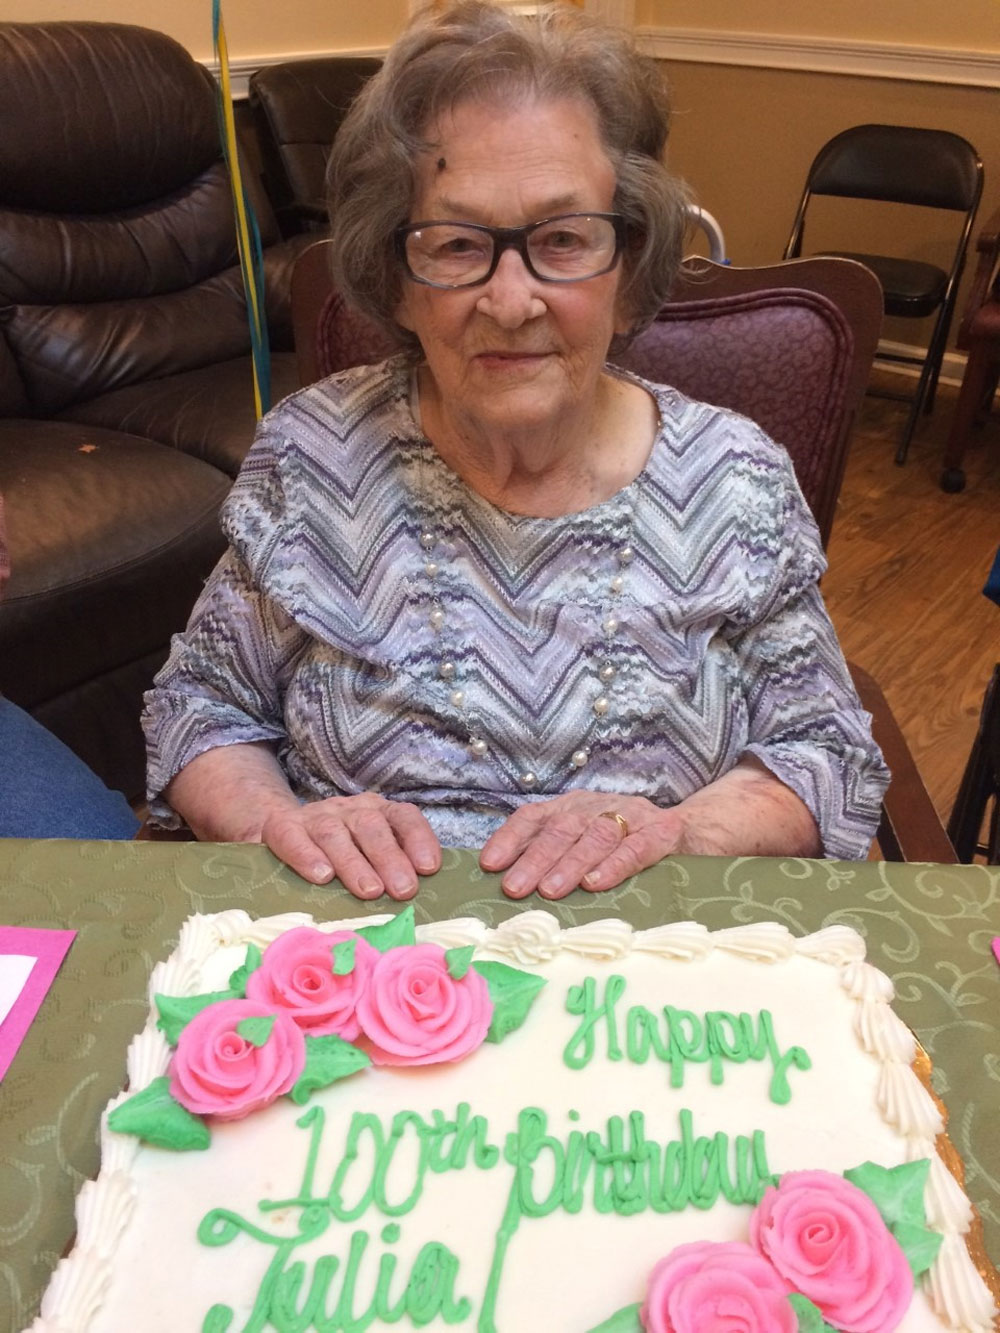 Angels for the Elderly memory care resident with blueberry dream cake celebrating 100th birthday